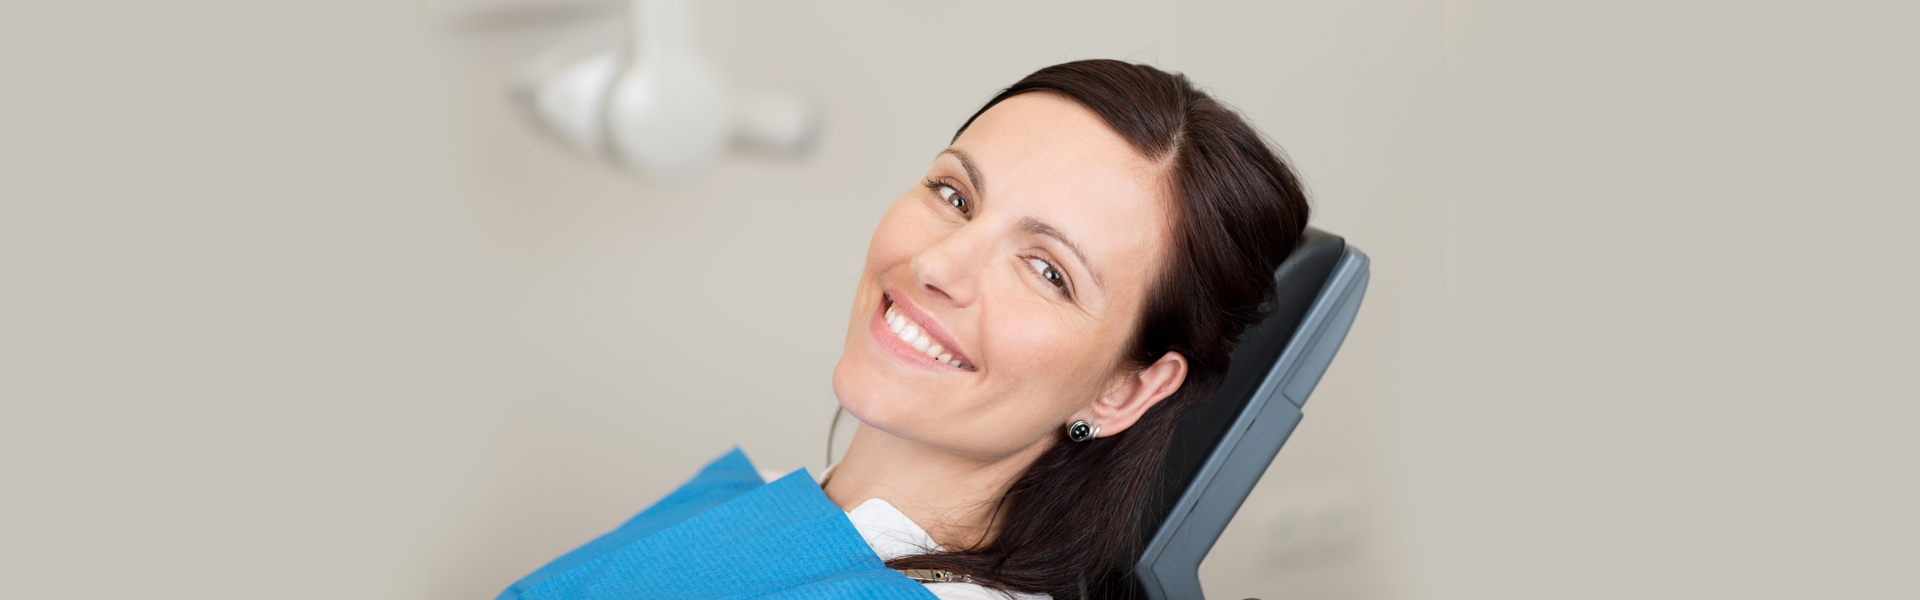 Post Tooth Extraction Guidelines for Caring for Your Mouth